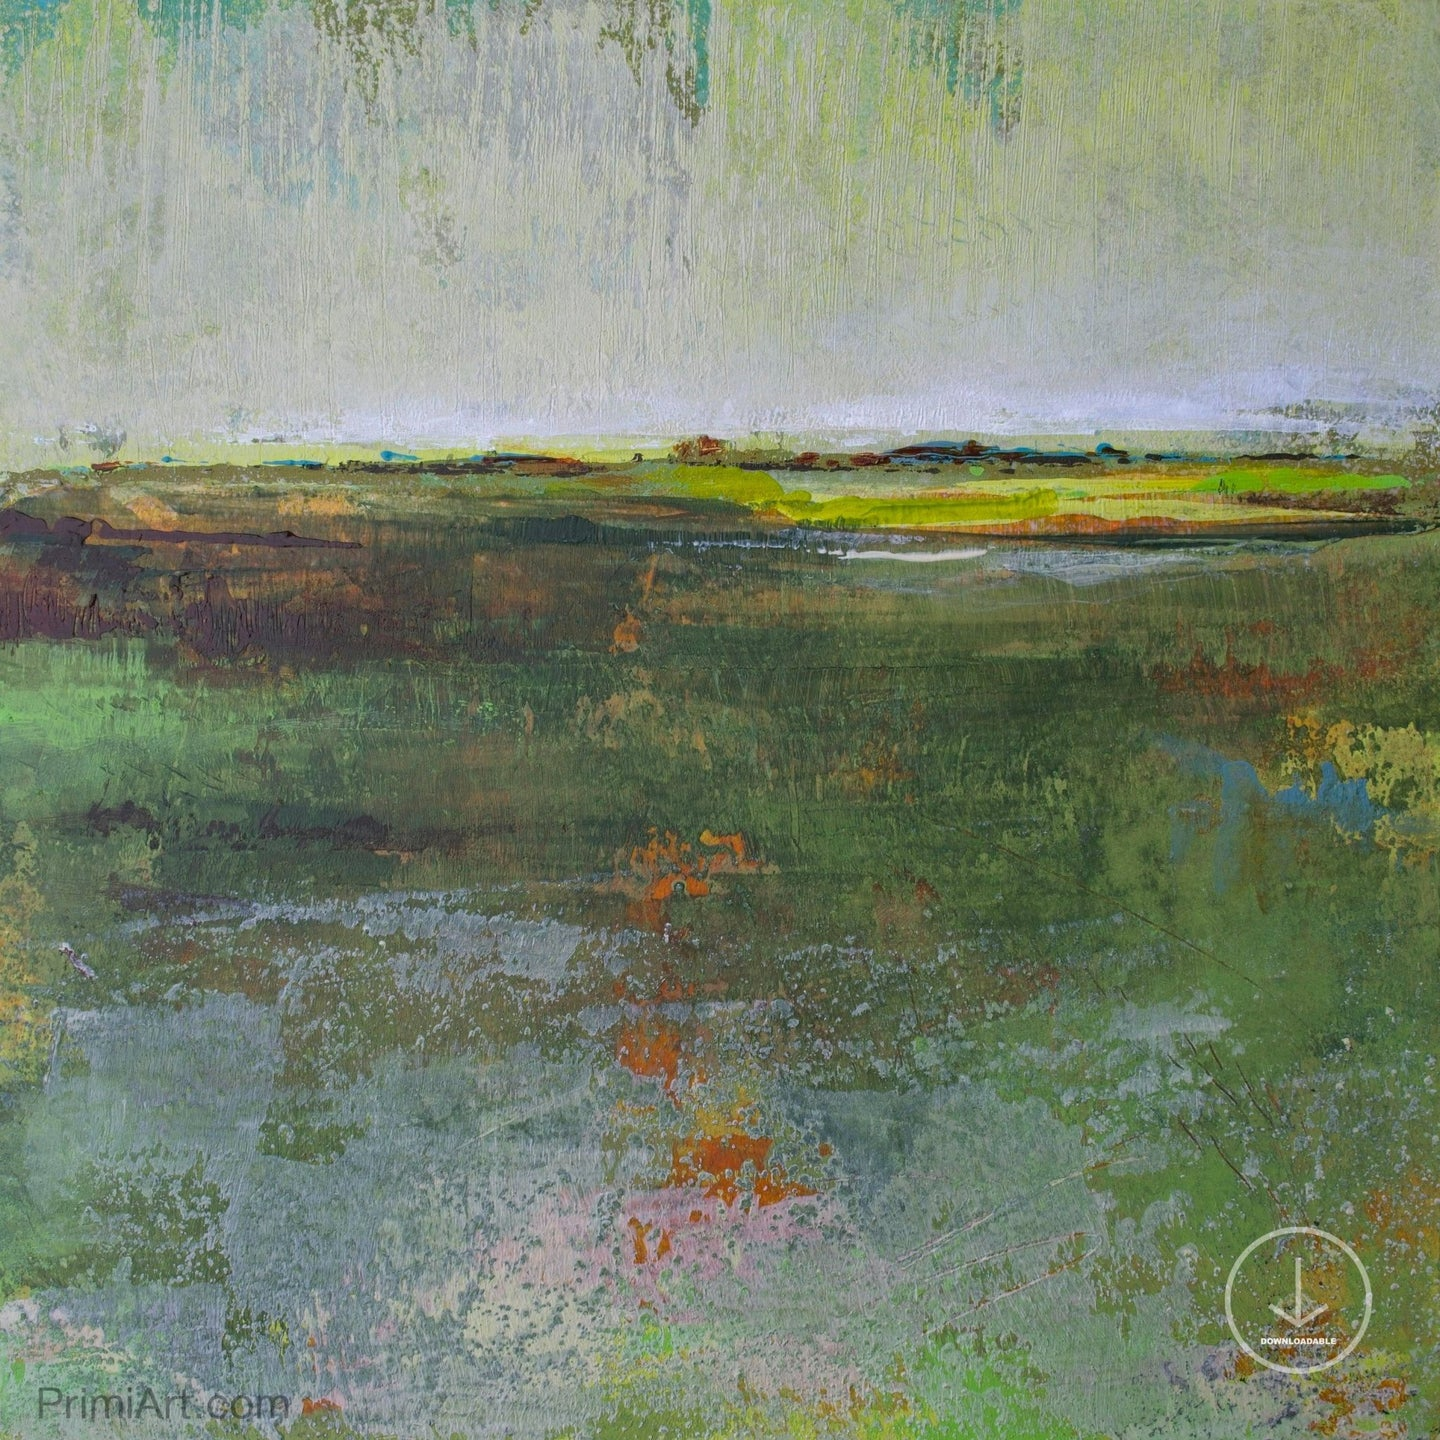 Green abstract landscape painting